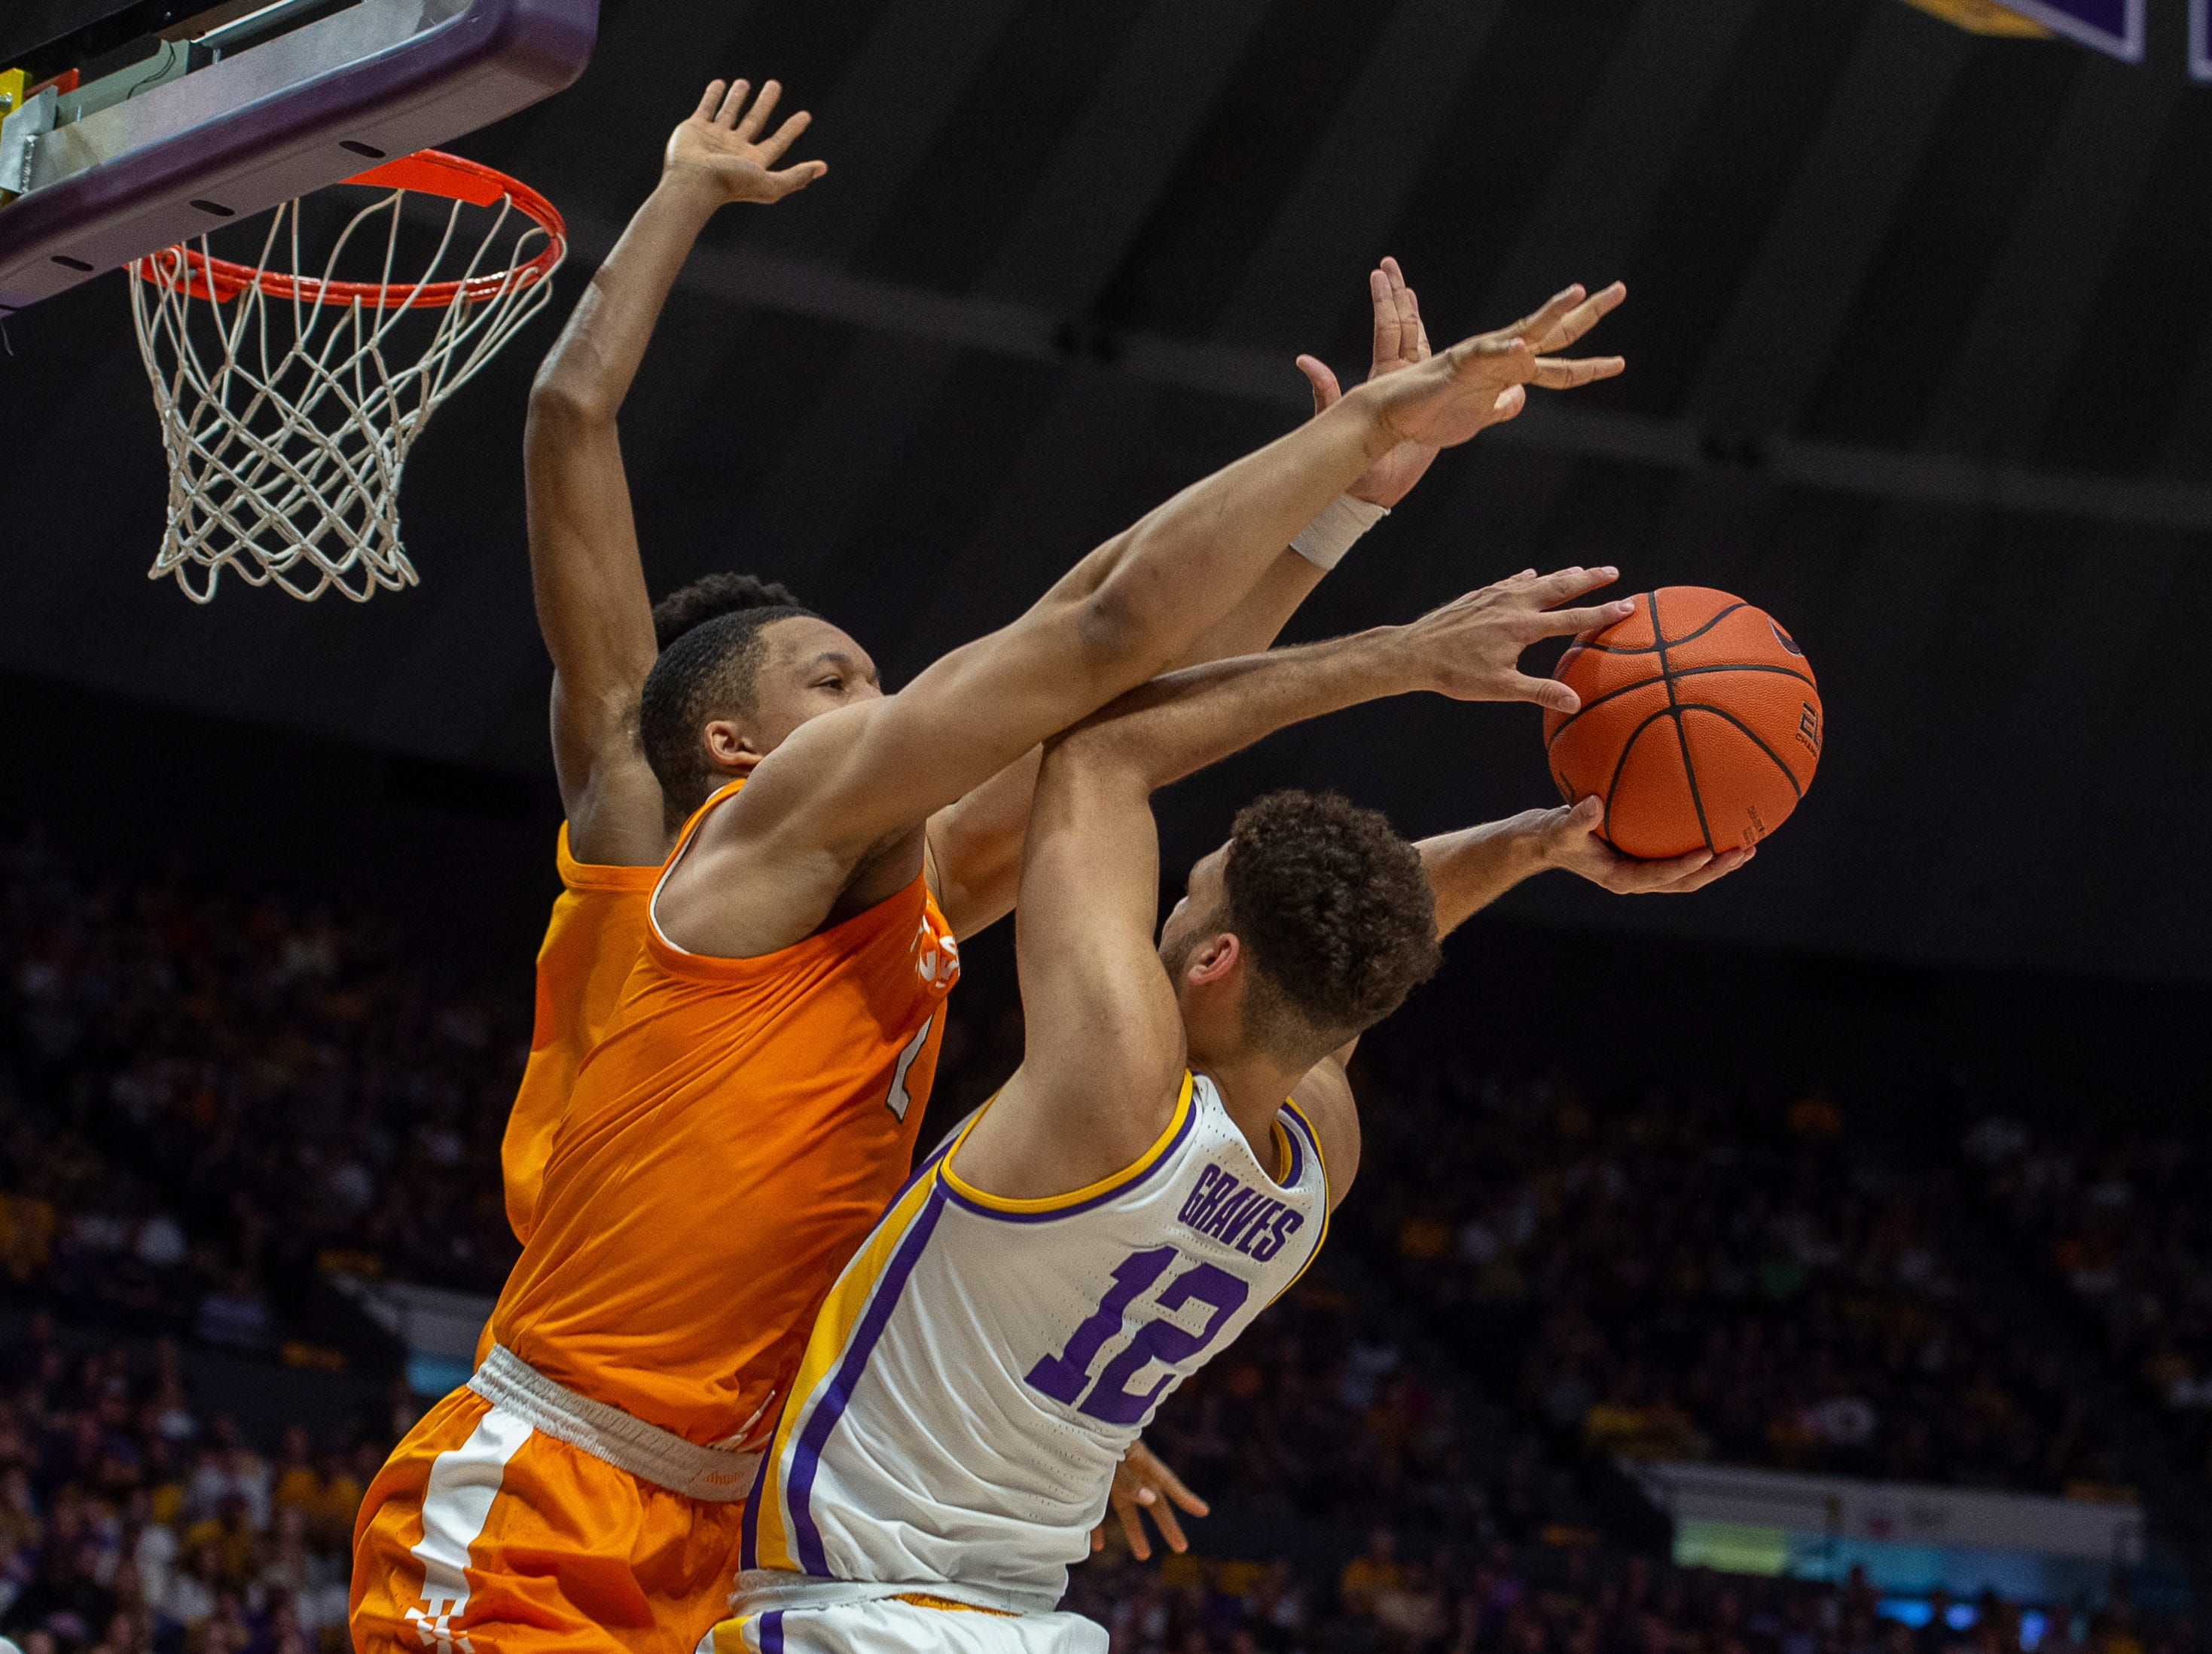 LSU's Marshall Graves takes a shot and blocked by Tennessee's Grant Williams during an NCAA college basketball game, Saturday, Feb. 23, 2019, in Baton Rouge, La. (Scott Clause/The Daily Advertiser via AP)